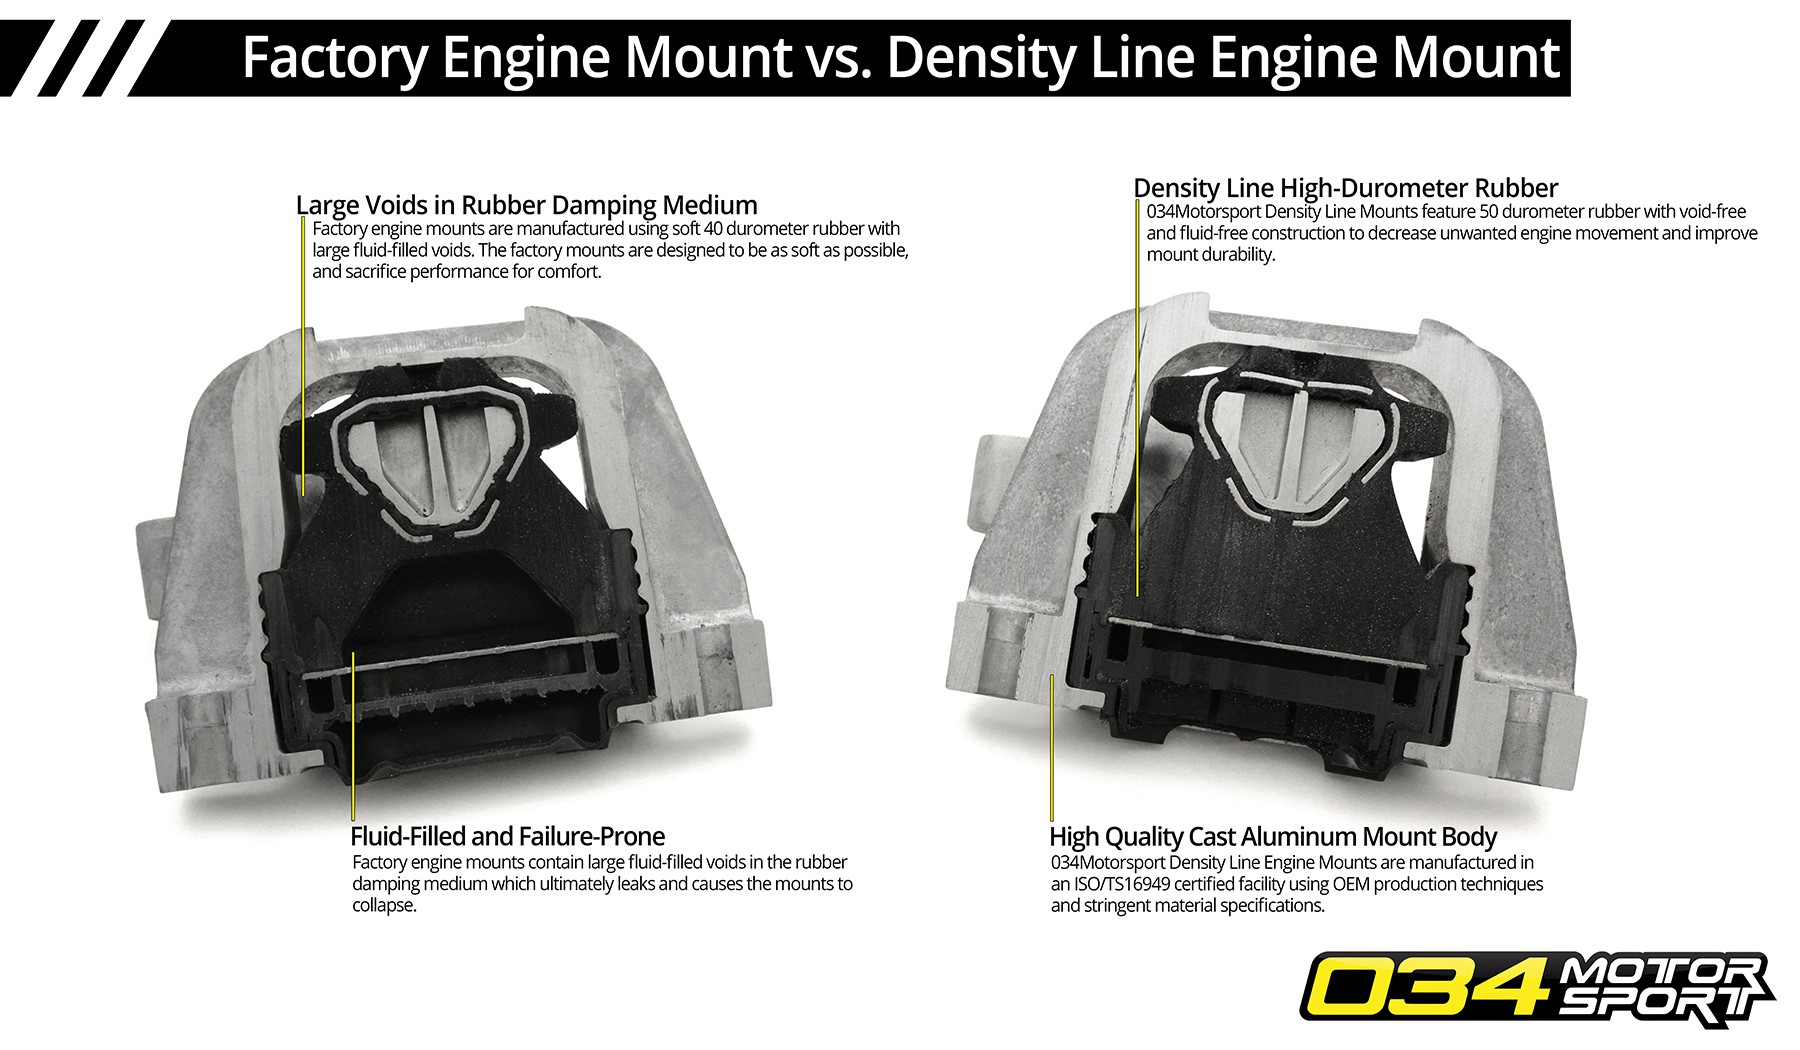 Factory Engine Mount vs. Density Line Engine Mount